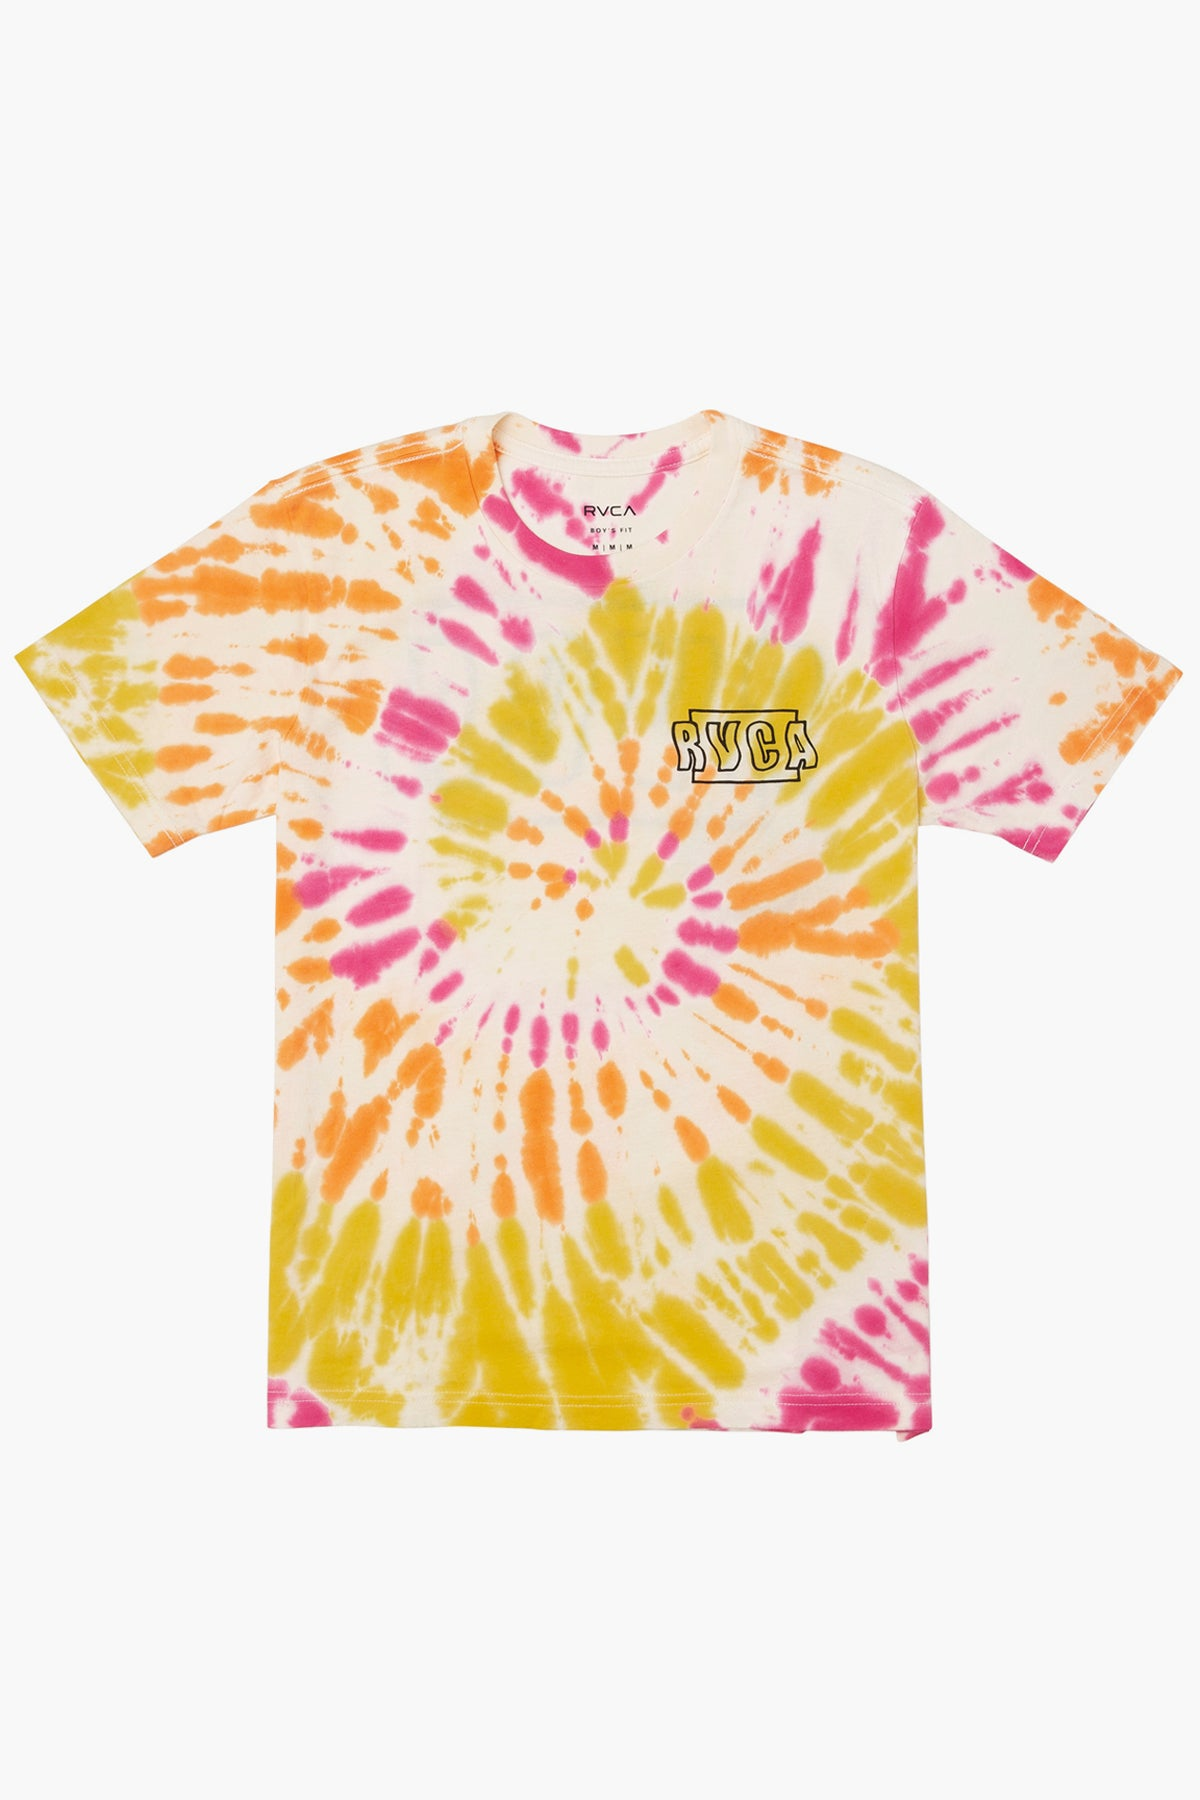 RVCA Swerve Boys Shirt